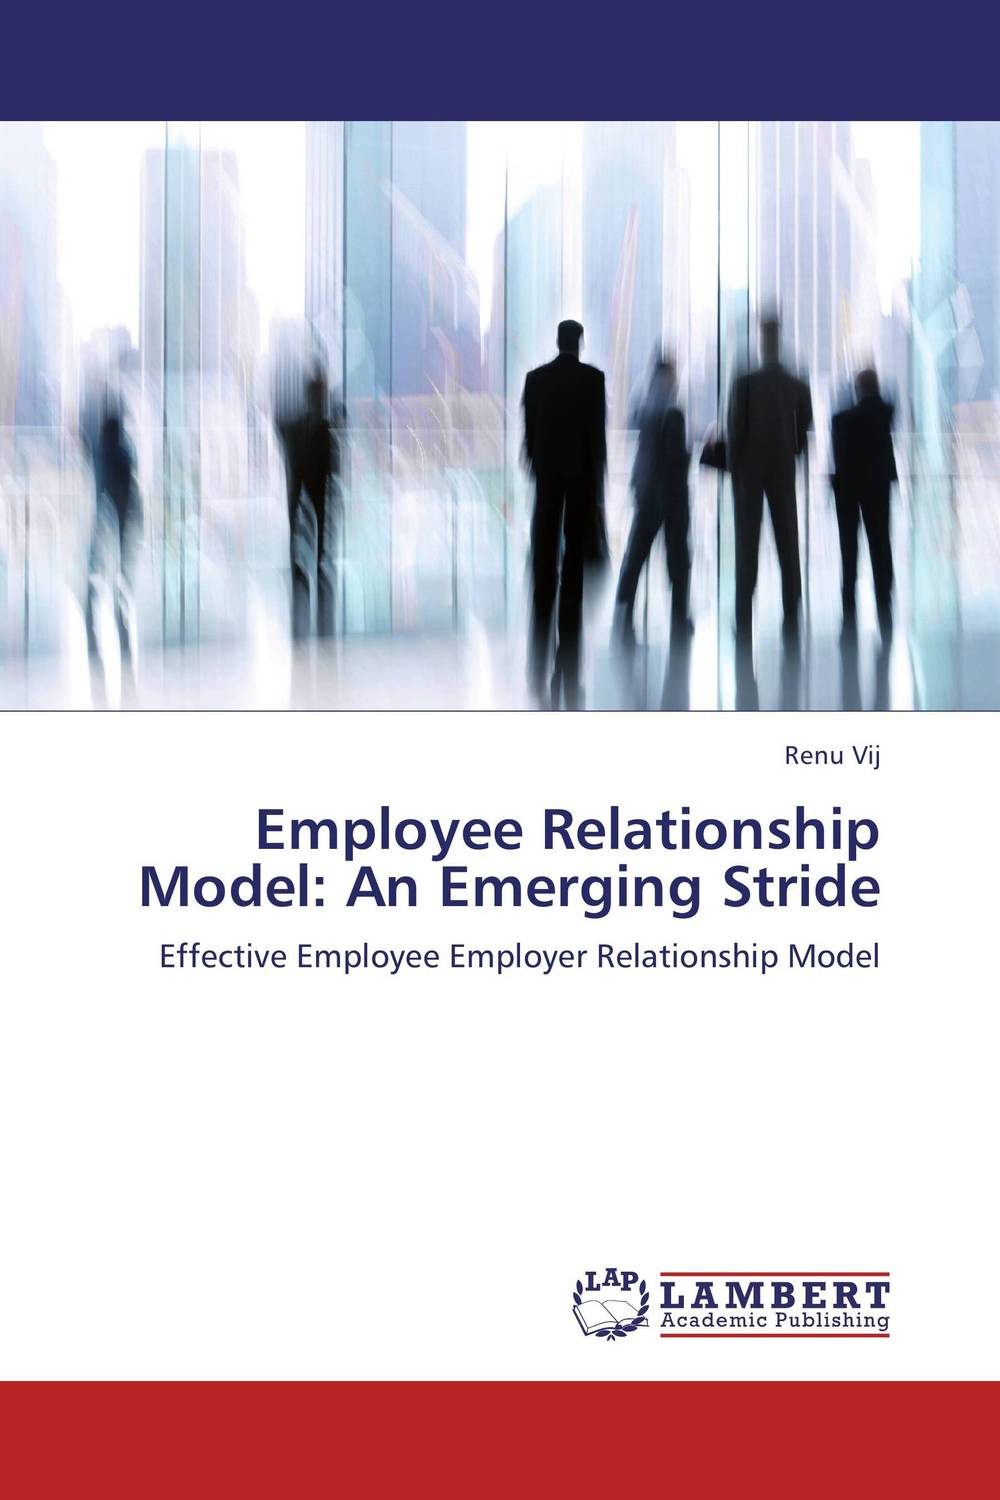 Employee Relationship Model: An Emerging Stride the teeth with root canal students to practice root canal preparation and filling actually